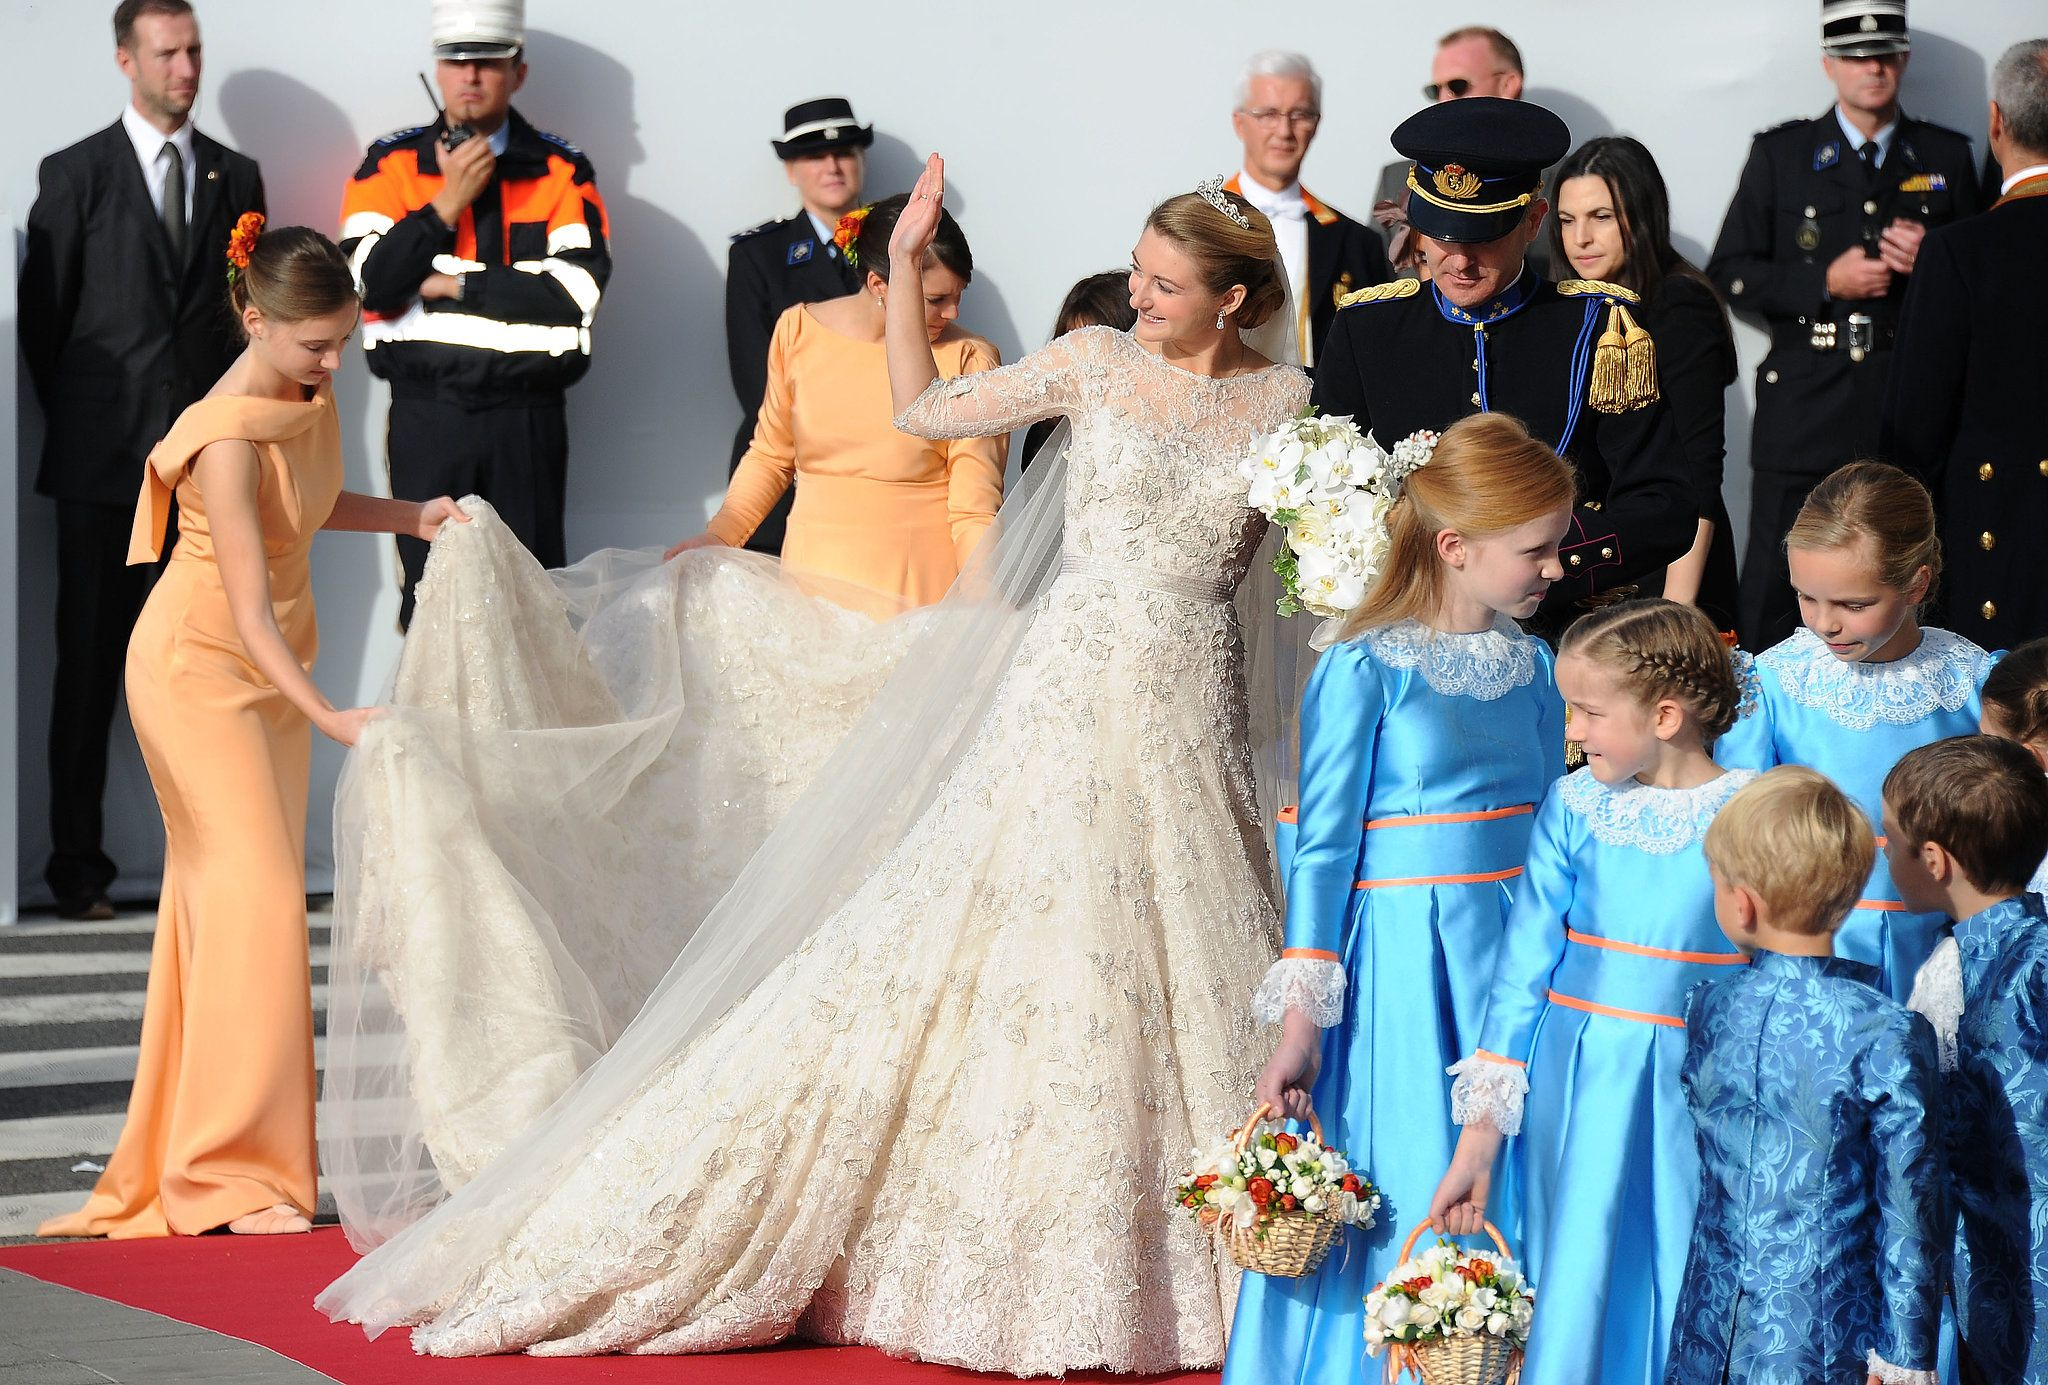 Ð?аÑ?Ñ?инки по запÑ?оÑ?Ñ? Prince Guillaume and Princess Stéphanie of Luxembourg wedding